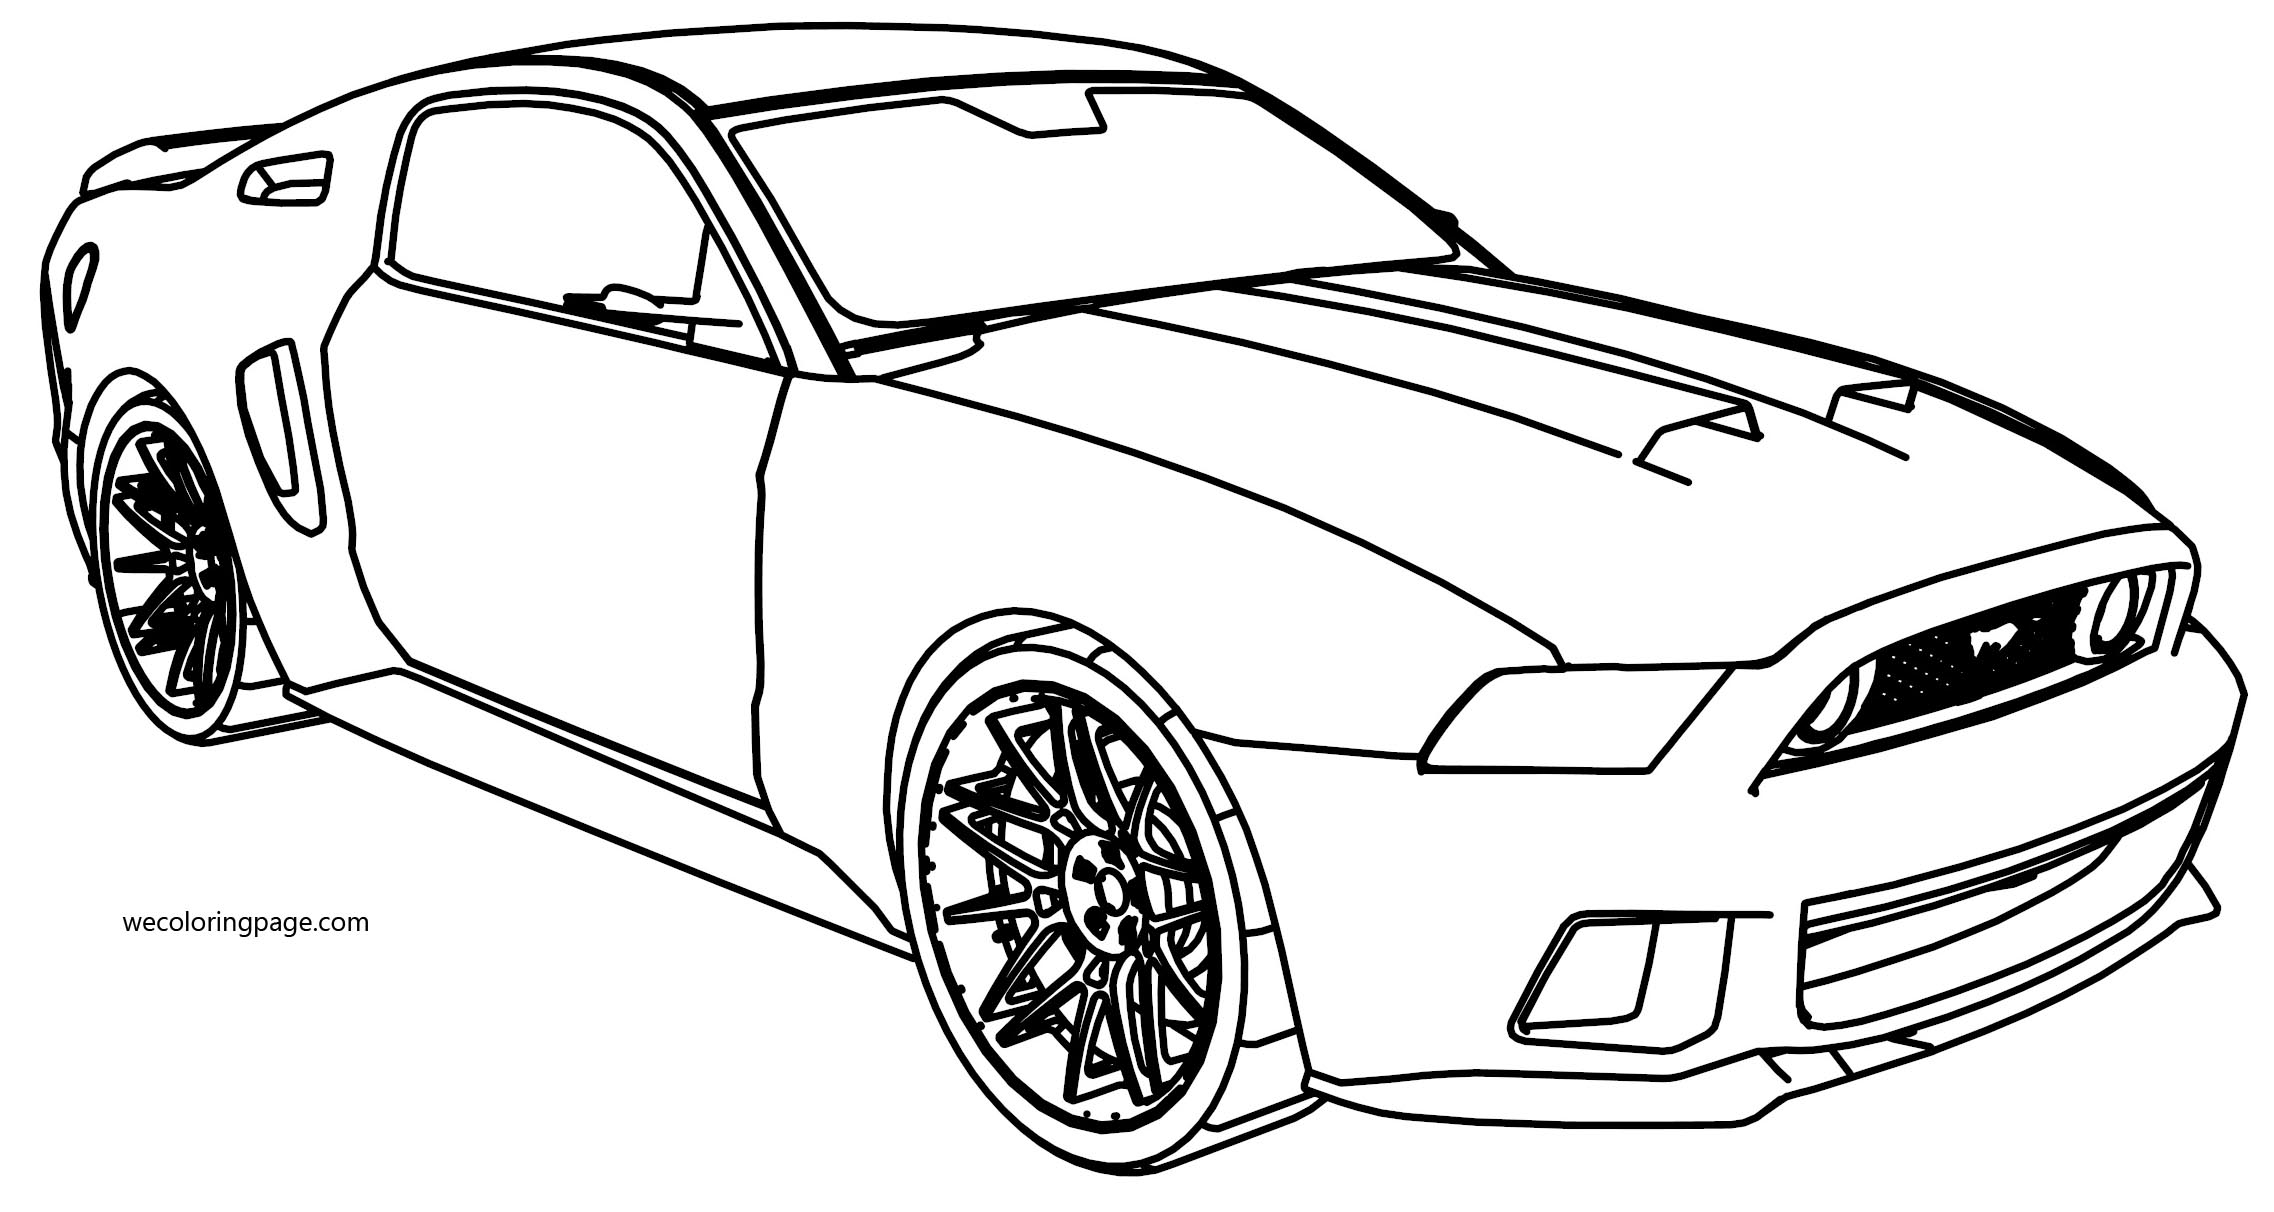 Ford Mustang Perspective Coloring Page